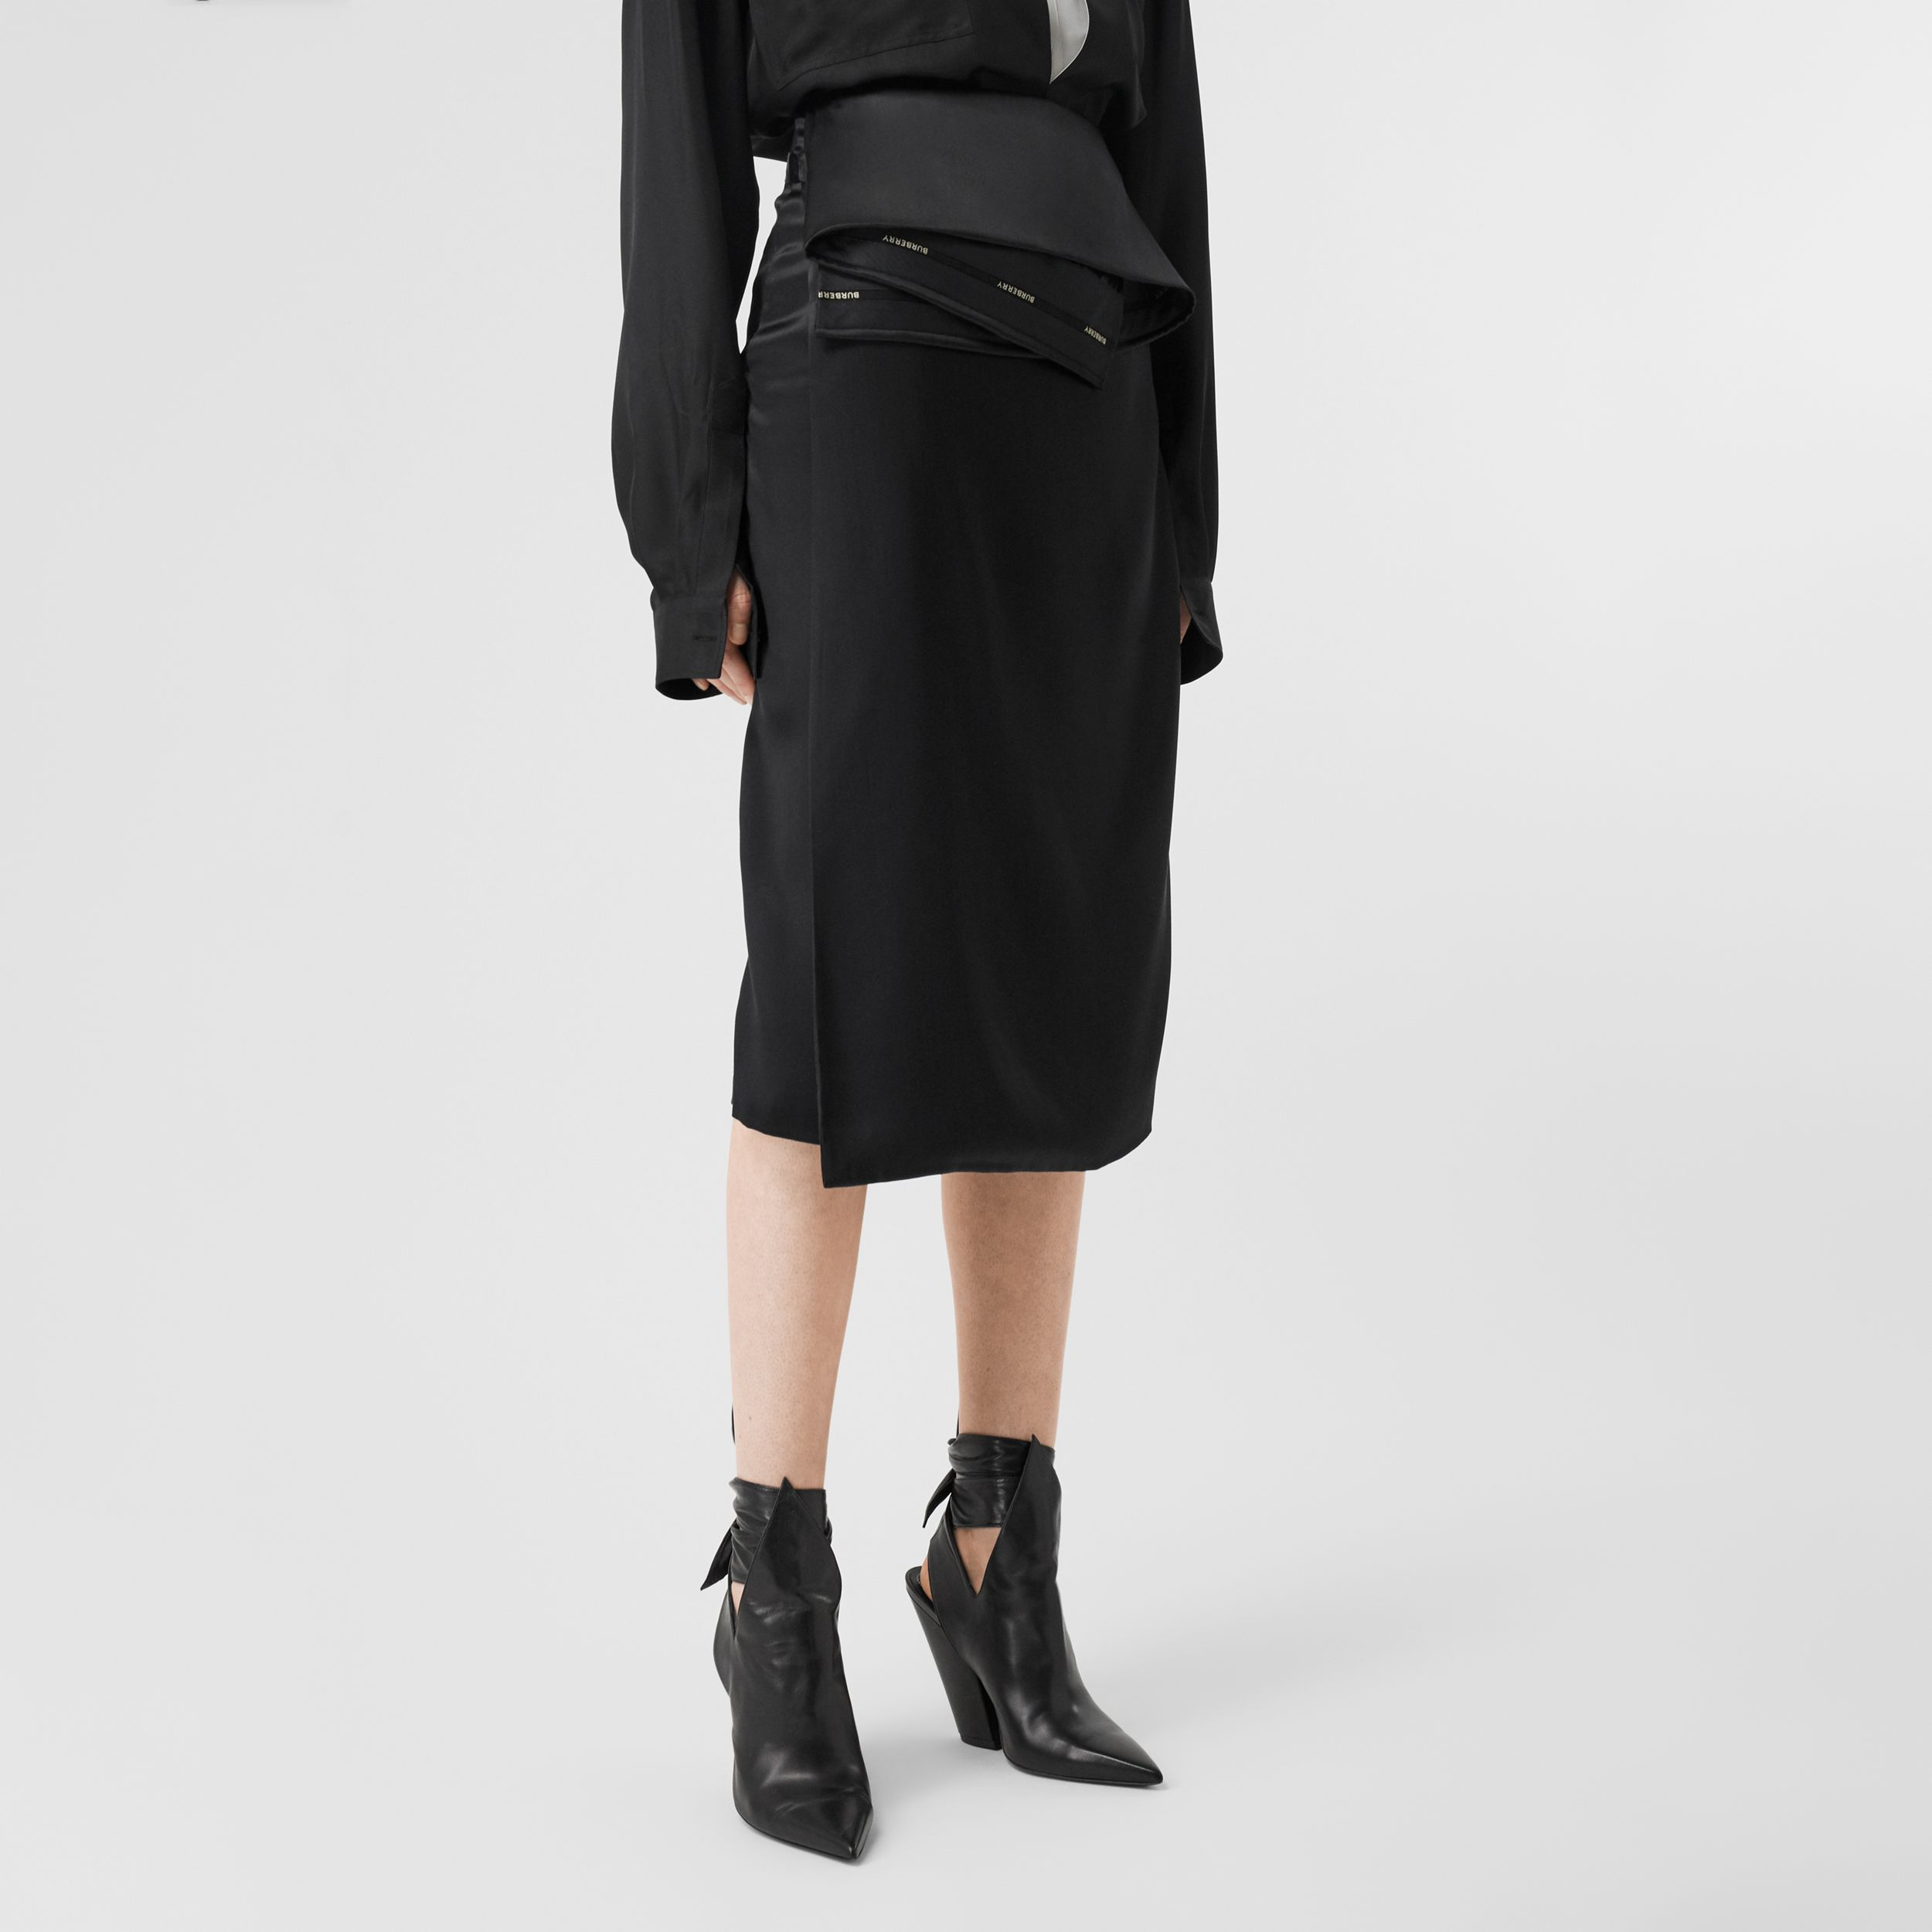 Silk Satin Foldover Skirt in Black - Women | Burberry Canada - 3